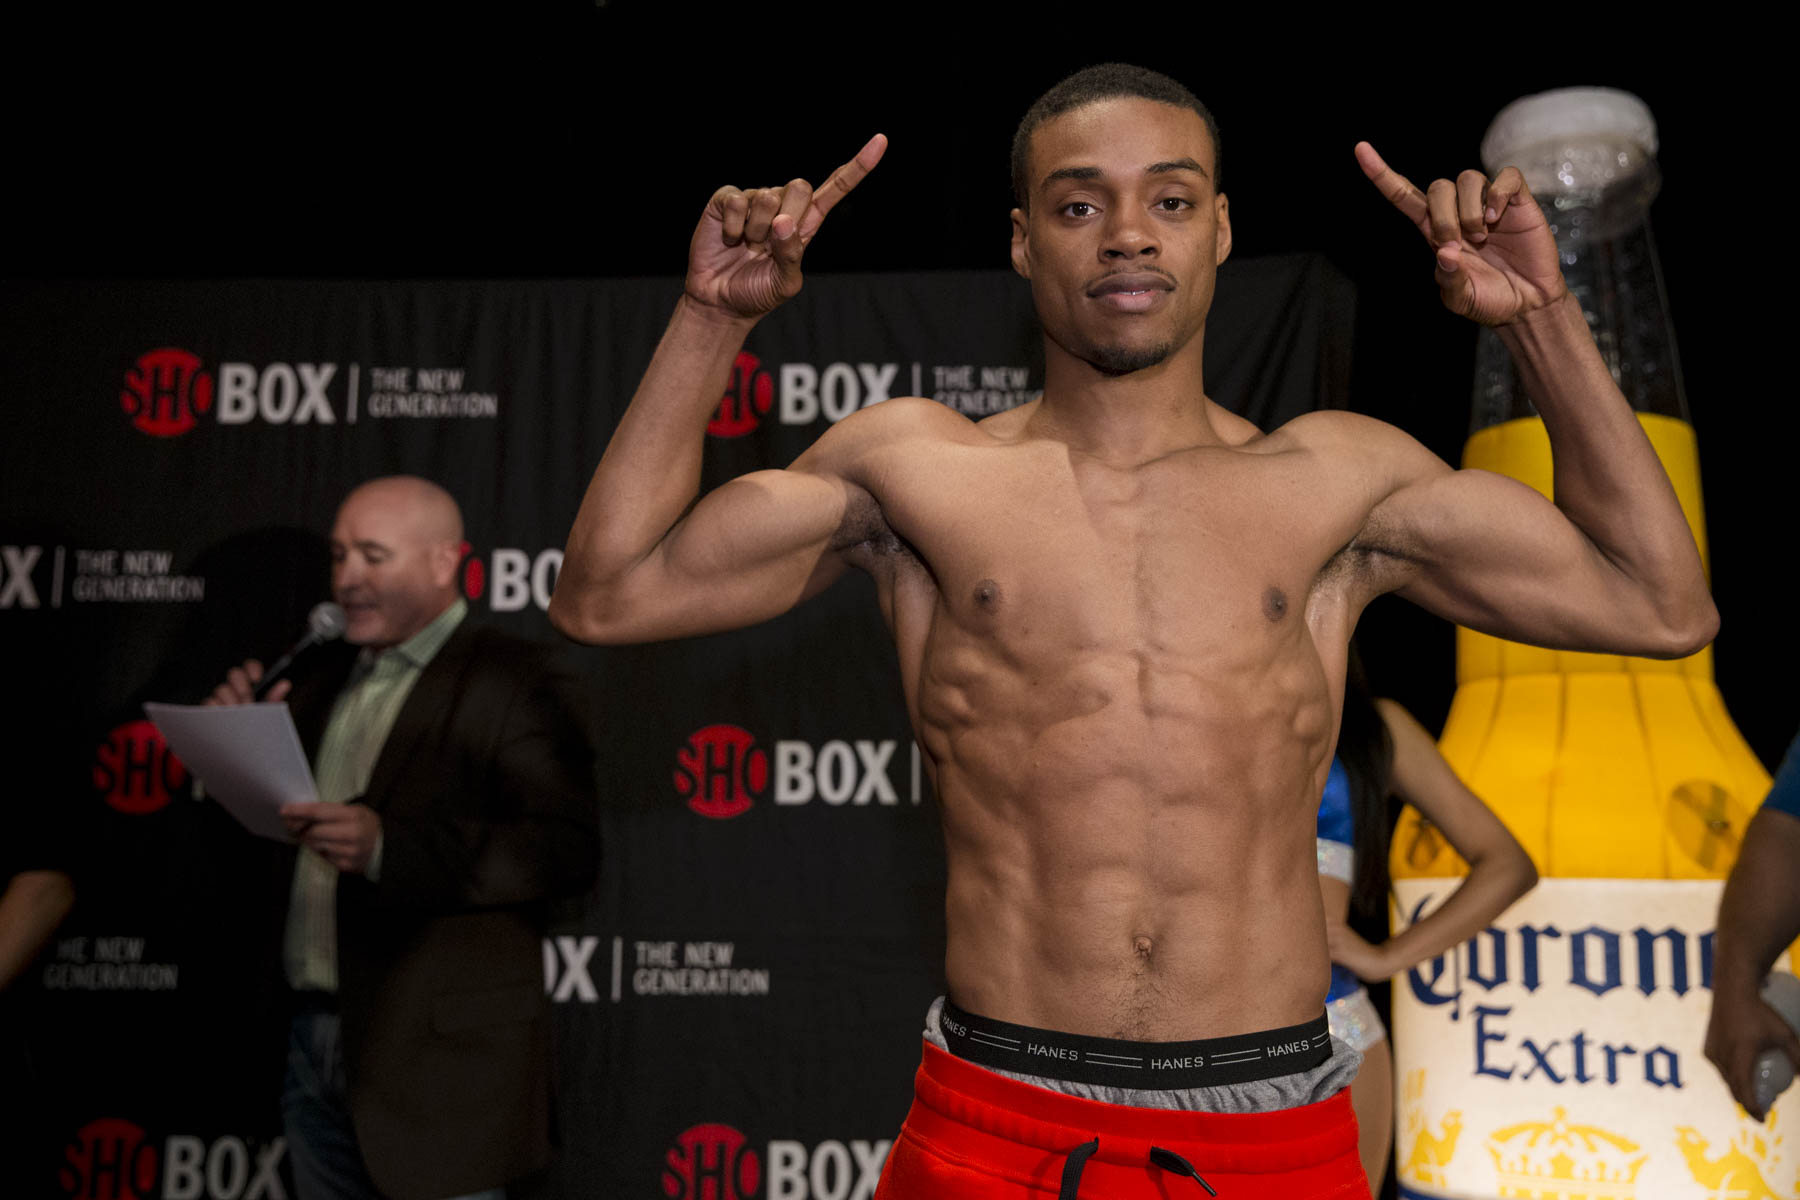 Errol Spence's trainer Derrick James says his fighter would KO Golovkin, Brook too